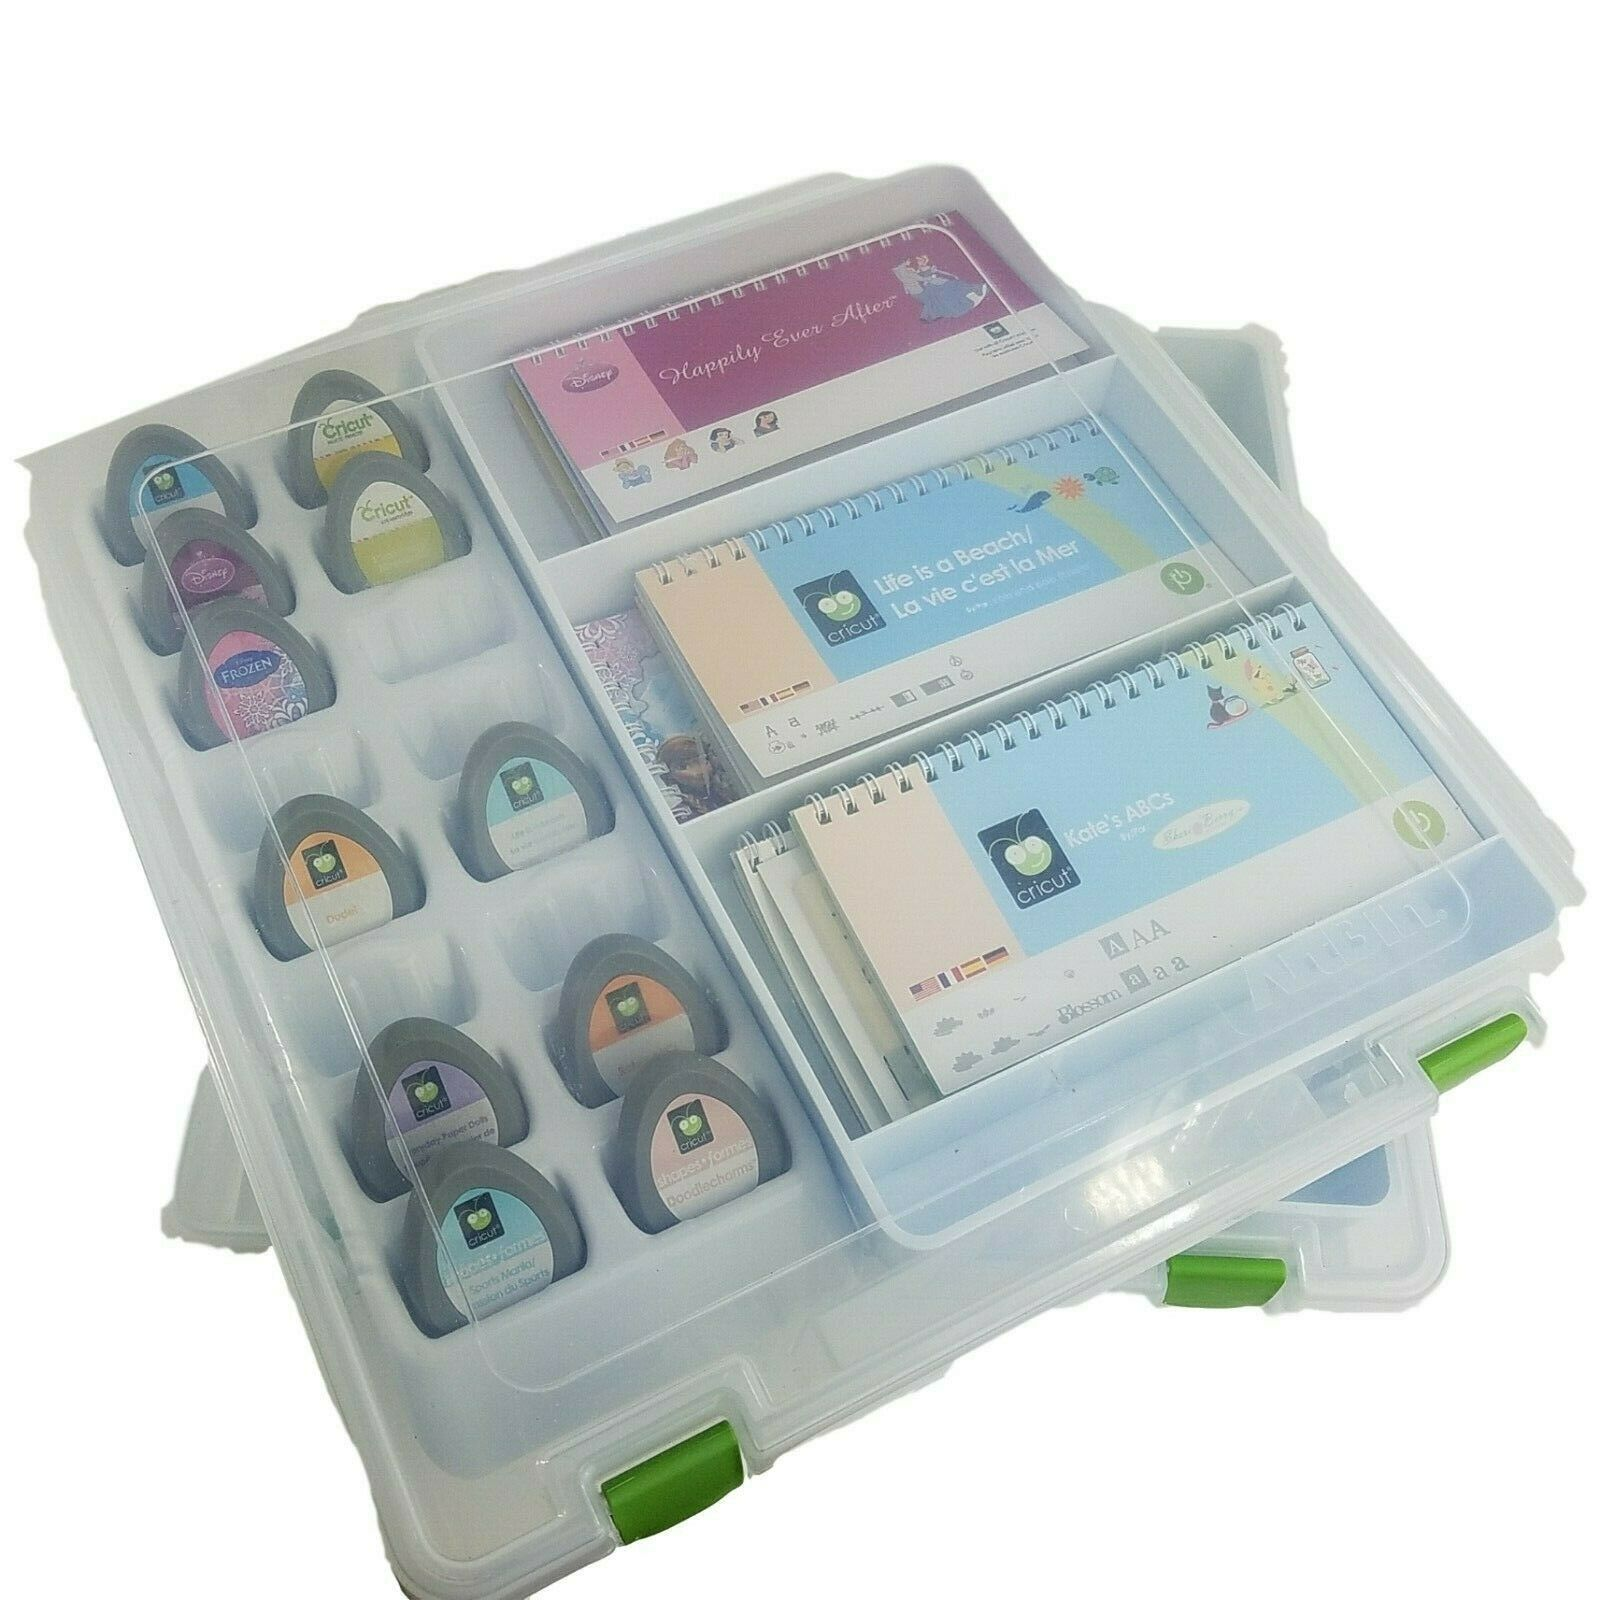 Cricut Cartridge Linked* Hard To Find Lot of New Ones Added Many 2 Choose From